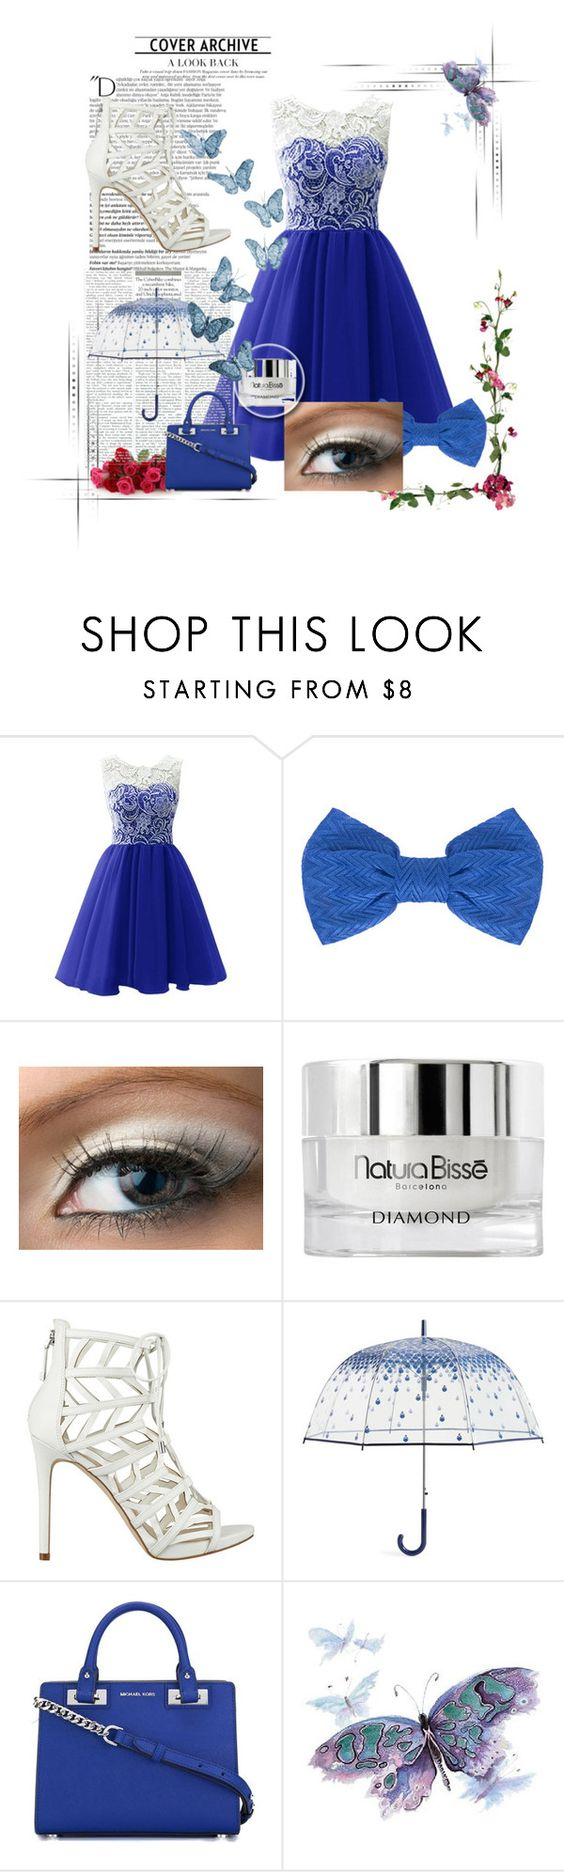 """Fancy Night Out"" by elsie-clark ❤ liked on Polyvore featuring beauty, Missoni, Natura Bissé, GUESS, Vera Bradley, MICHAEL Michael Kors and Balmain"